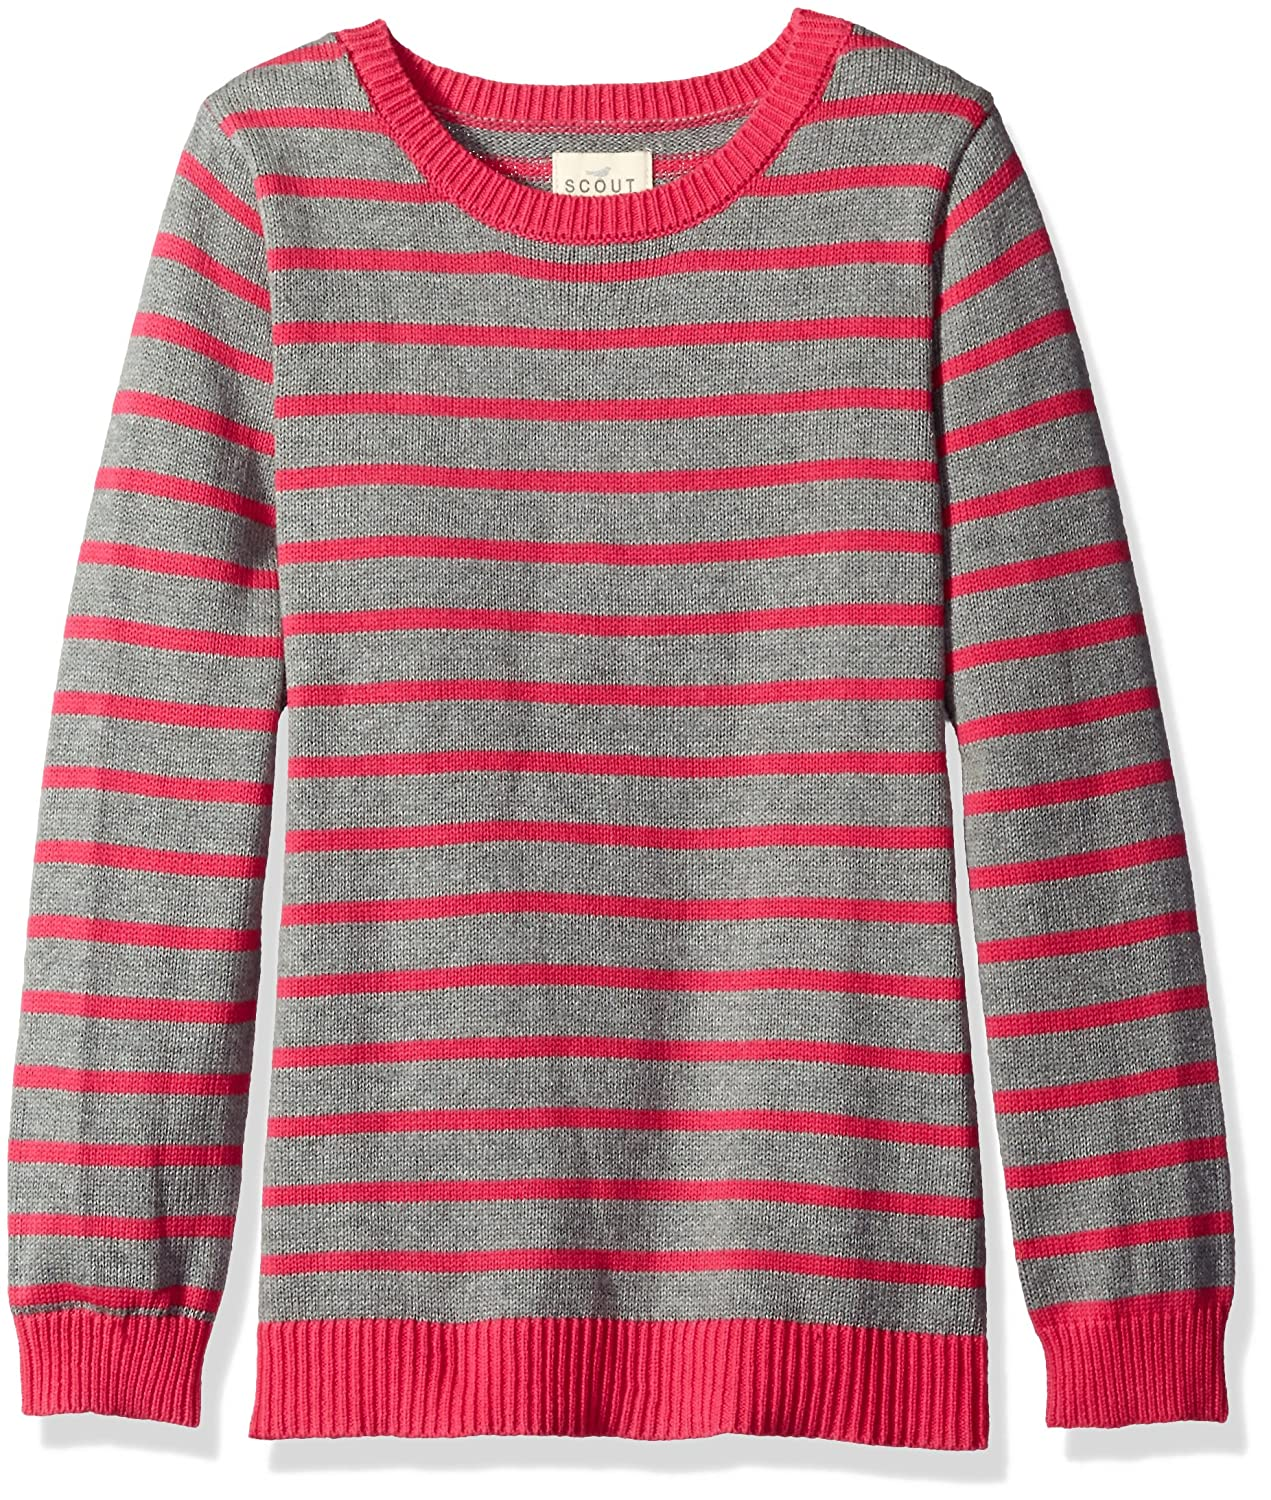 Scout + Ro Girls' Stripe Sweater Tunic SEC0006